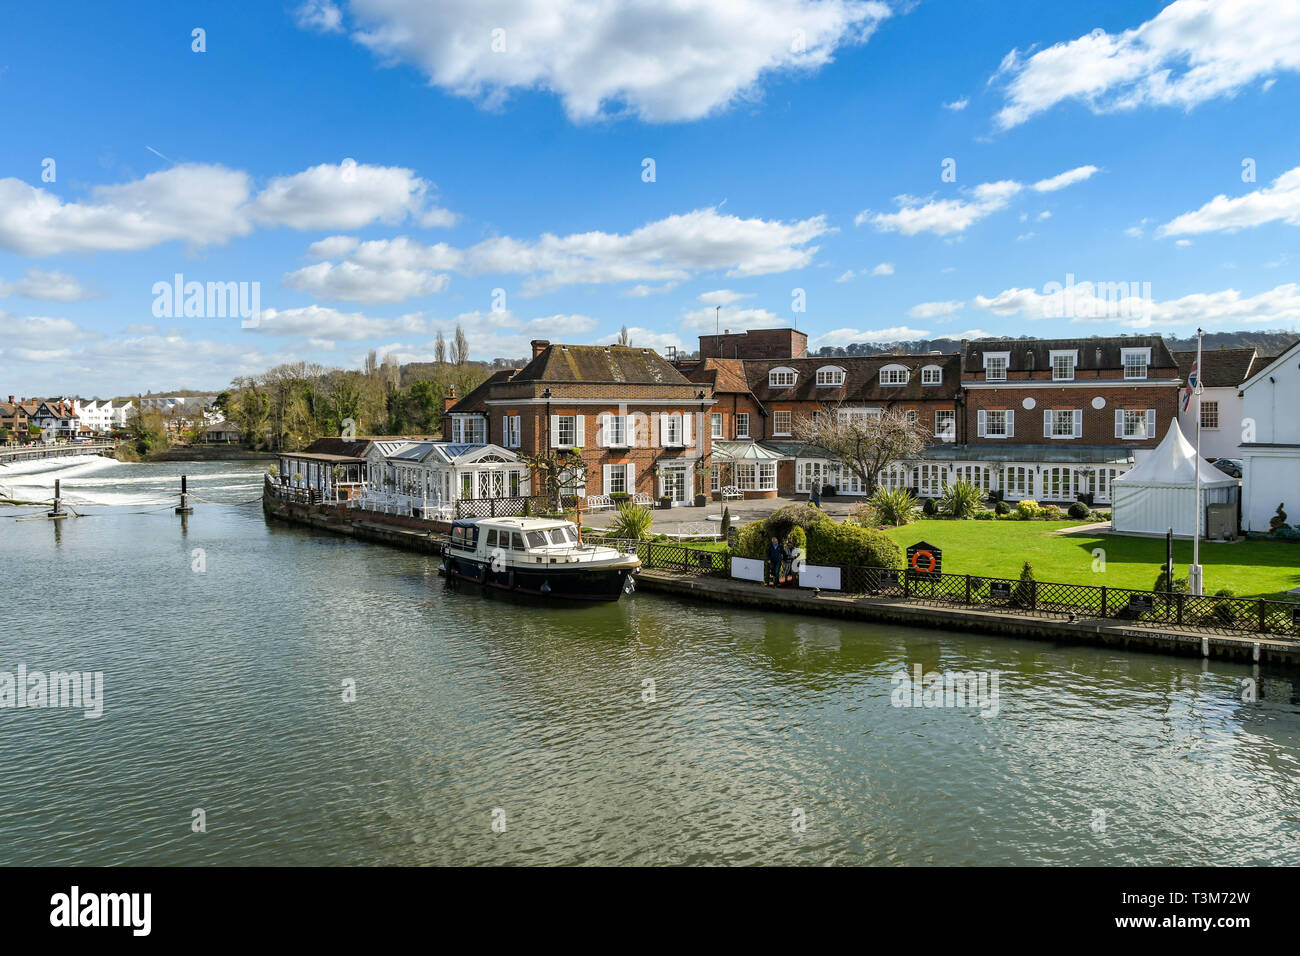 MARLOW, ENGLAND - MARCH 2019: The Compleat Angler hotel on the River Thames in Marlow with a motor boat moored alongside. Stock Photo